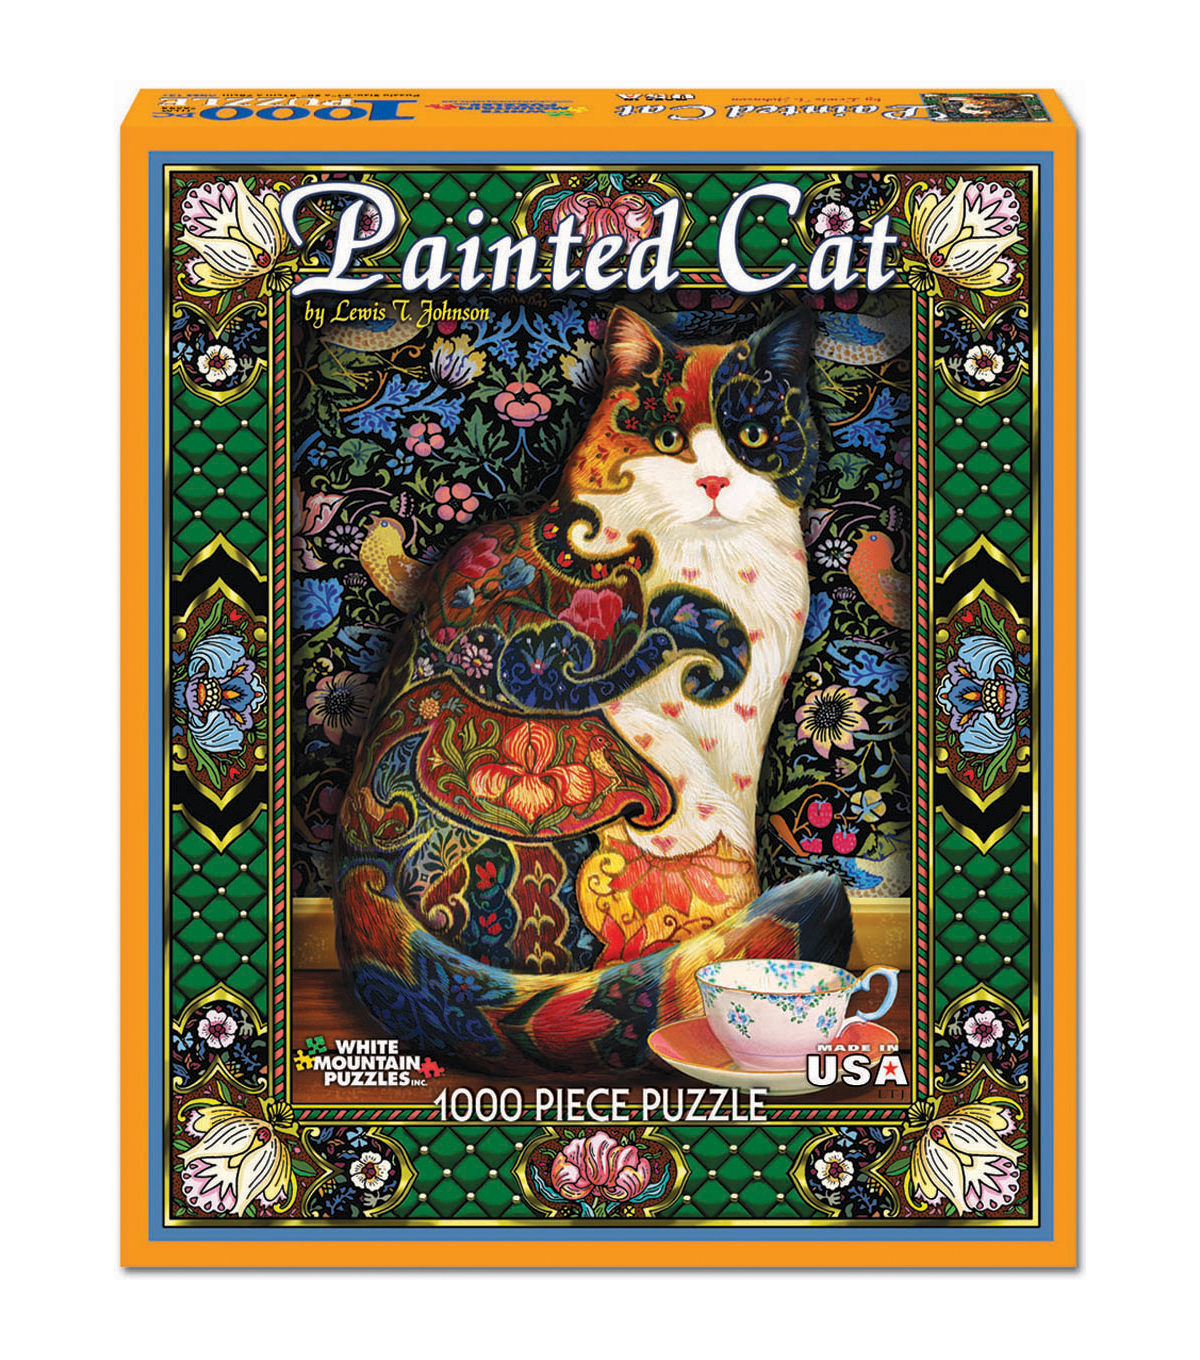 White Mountain Puzzles Jigsaw Puzzle Painted Cat